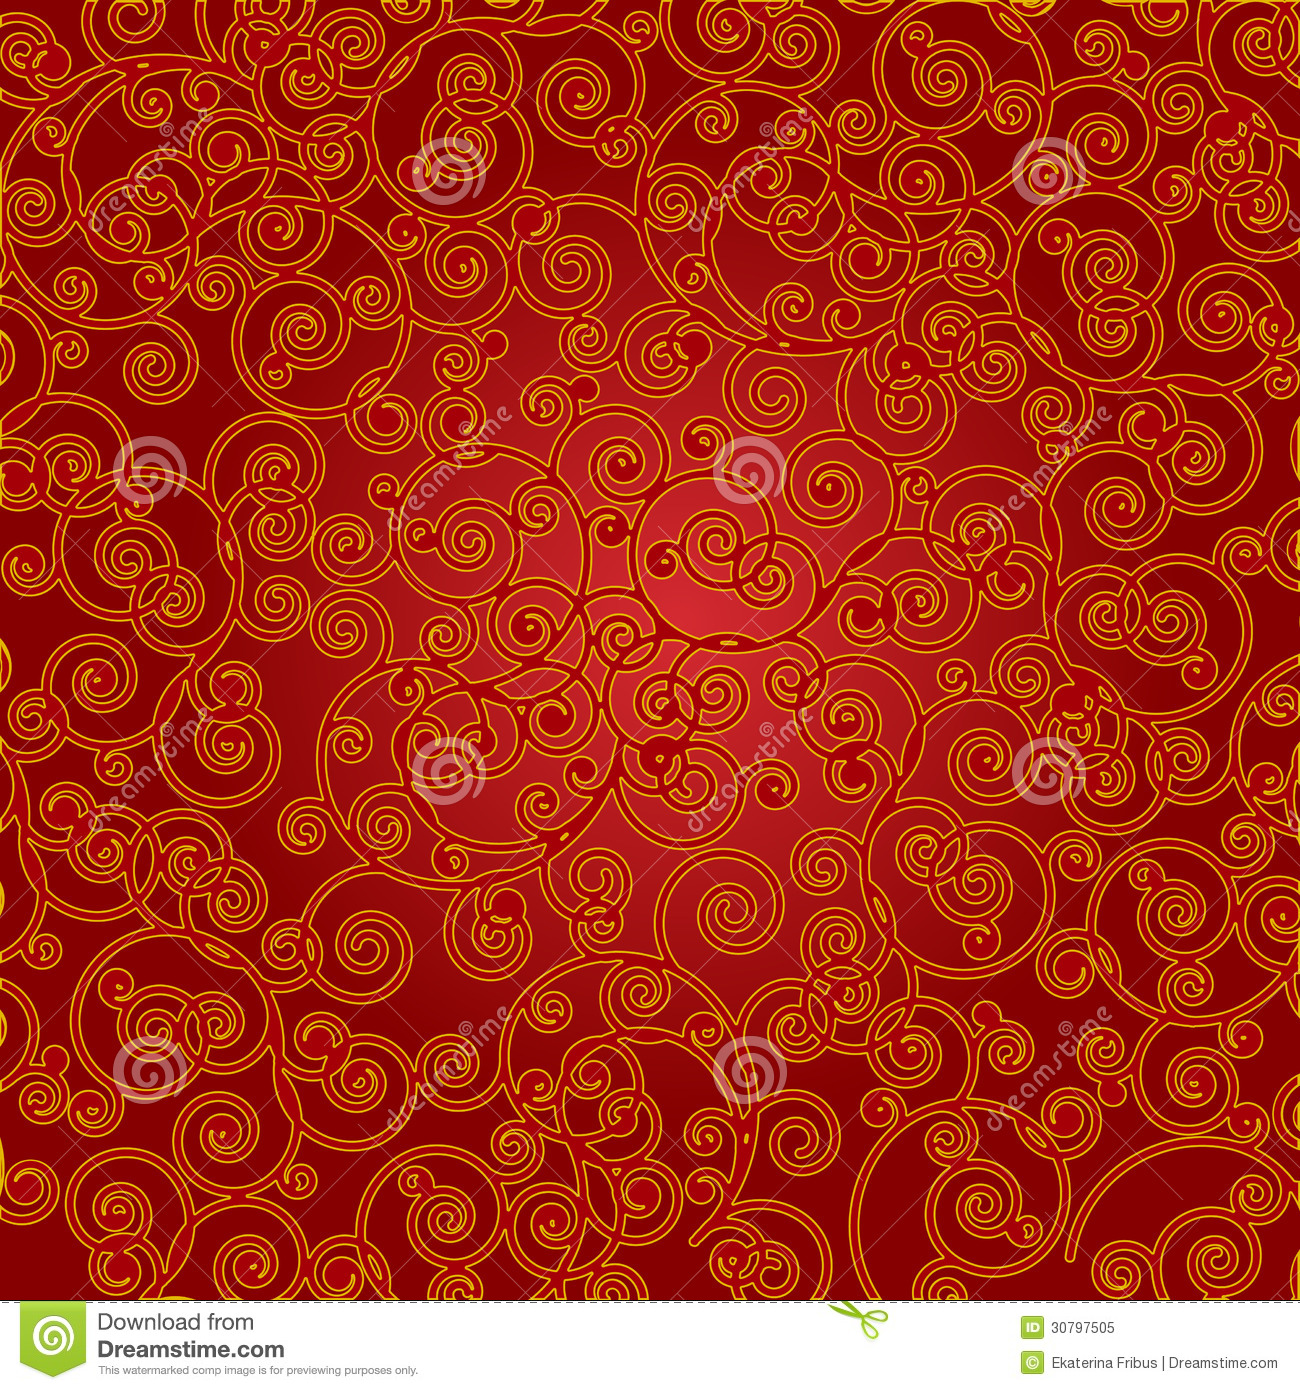 red golden background - photo #10